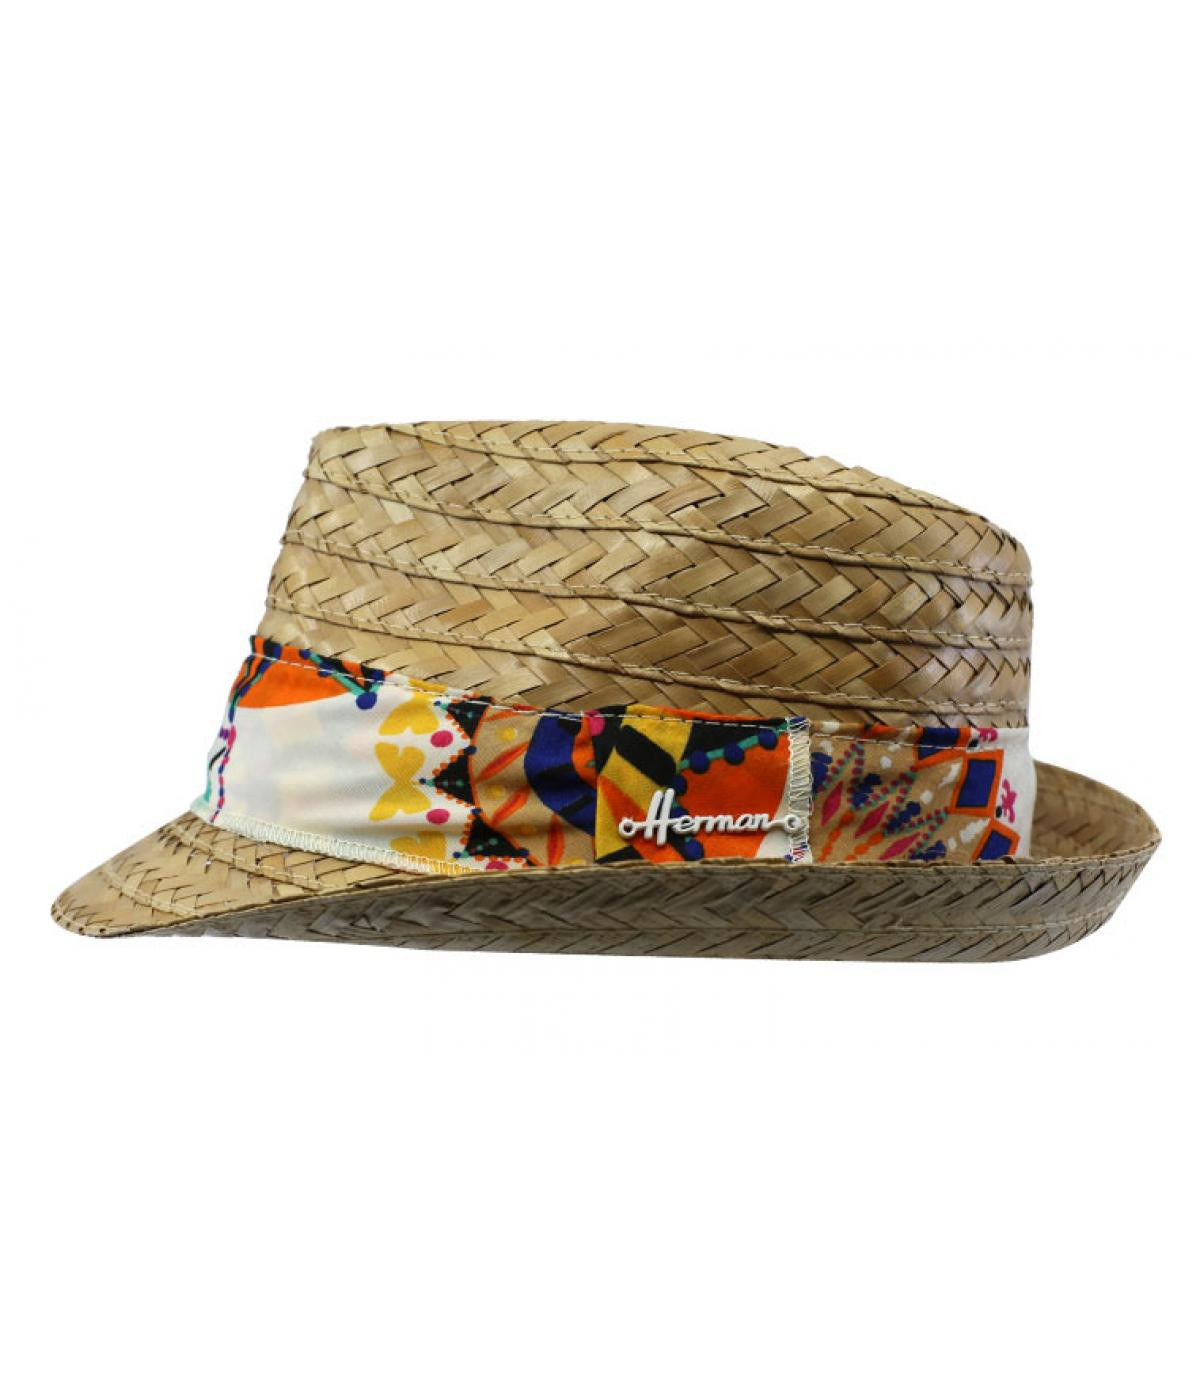 Trilby Stroh gelbes Hutband